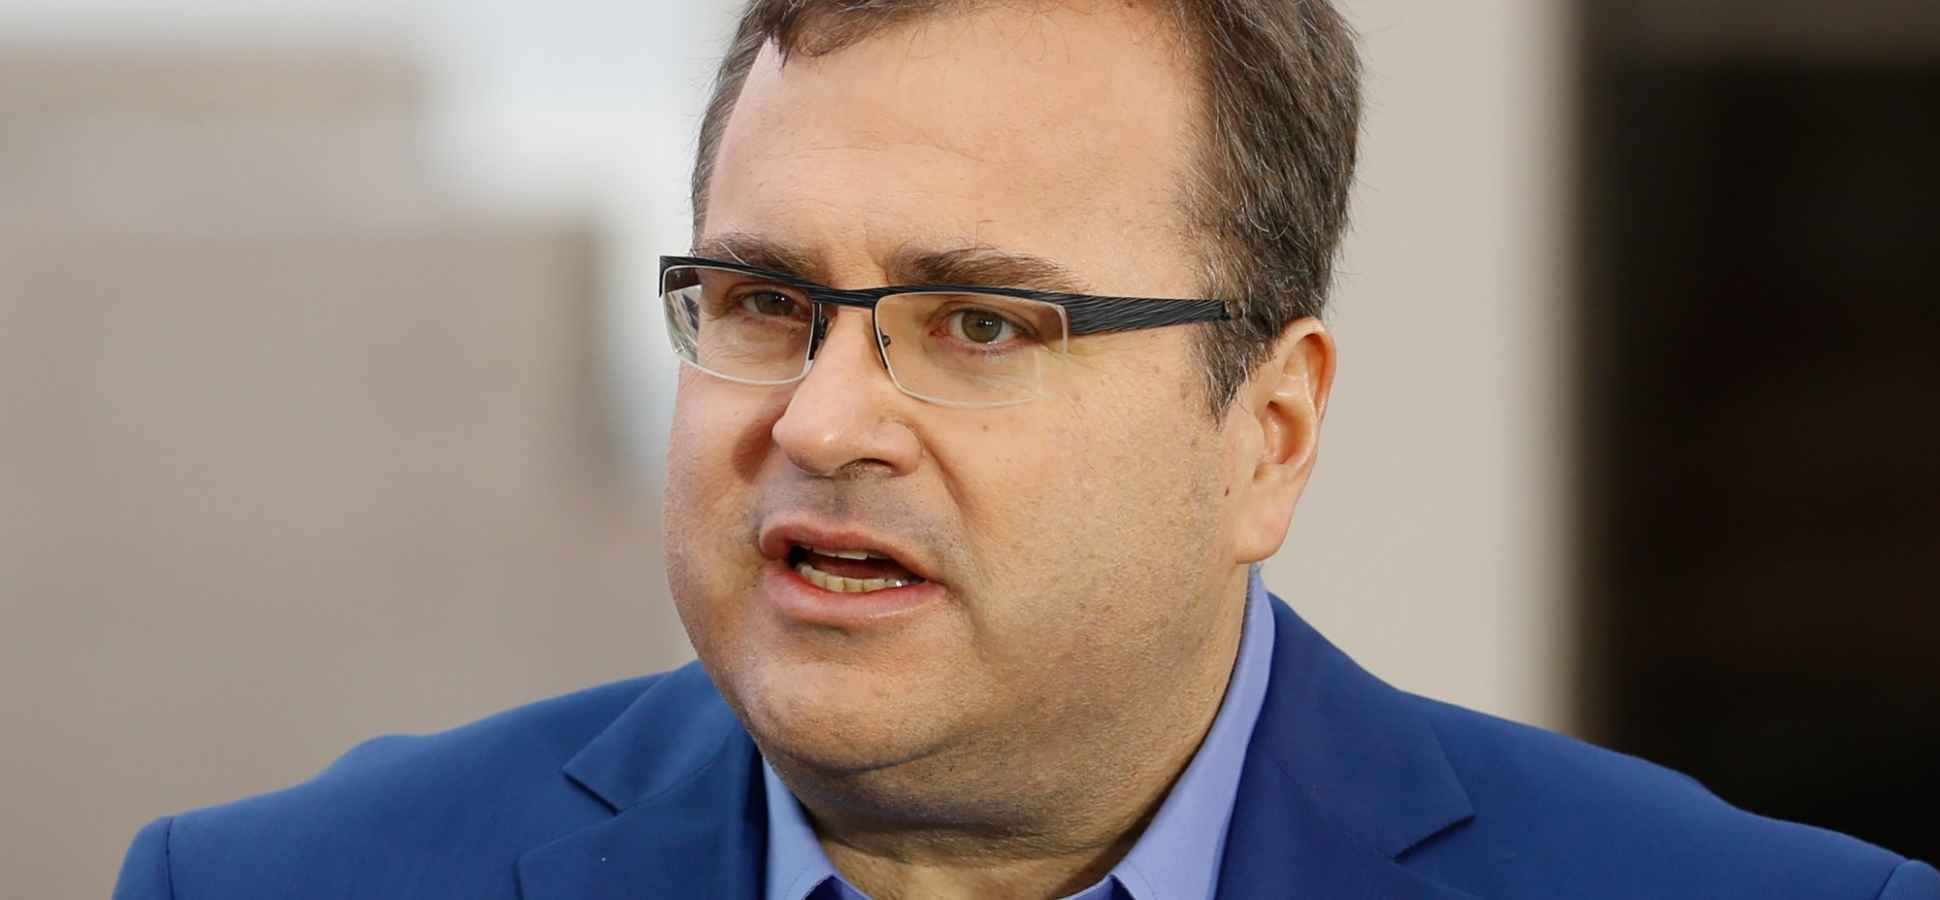 Reid Hoffman Creates $27 Million Fund to Research for Social Good